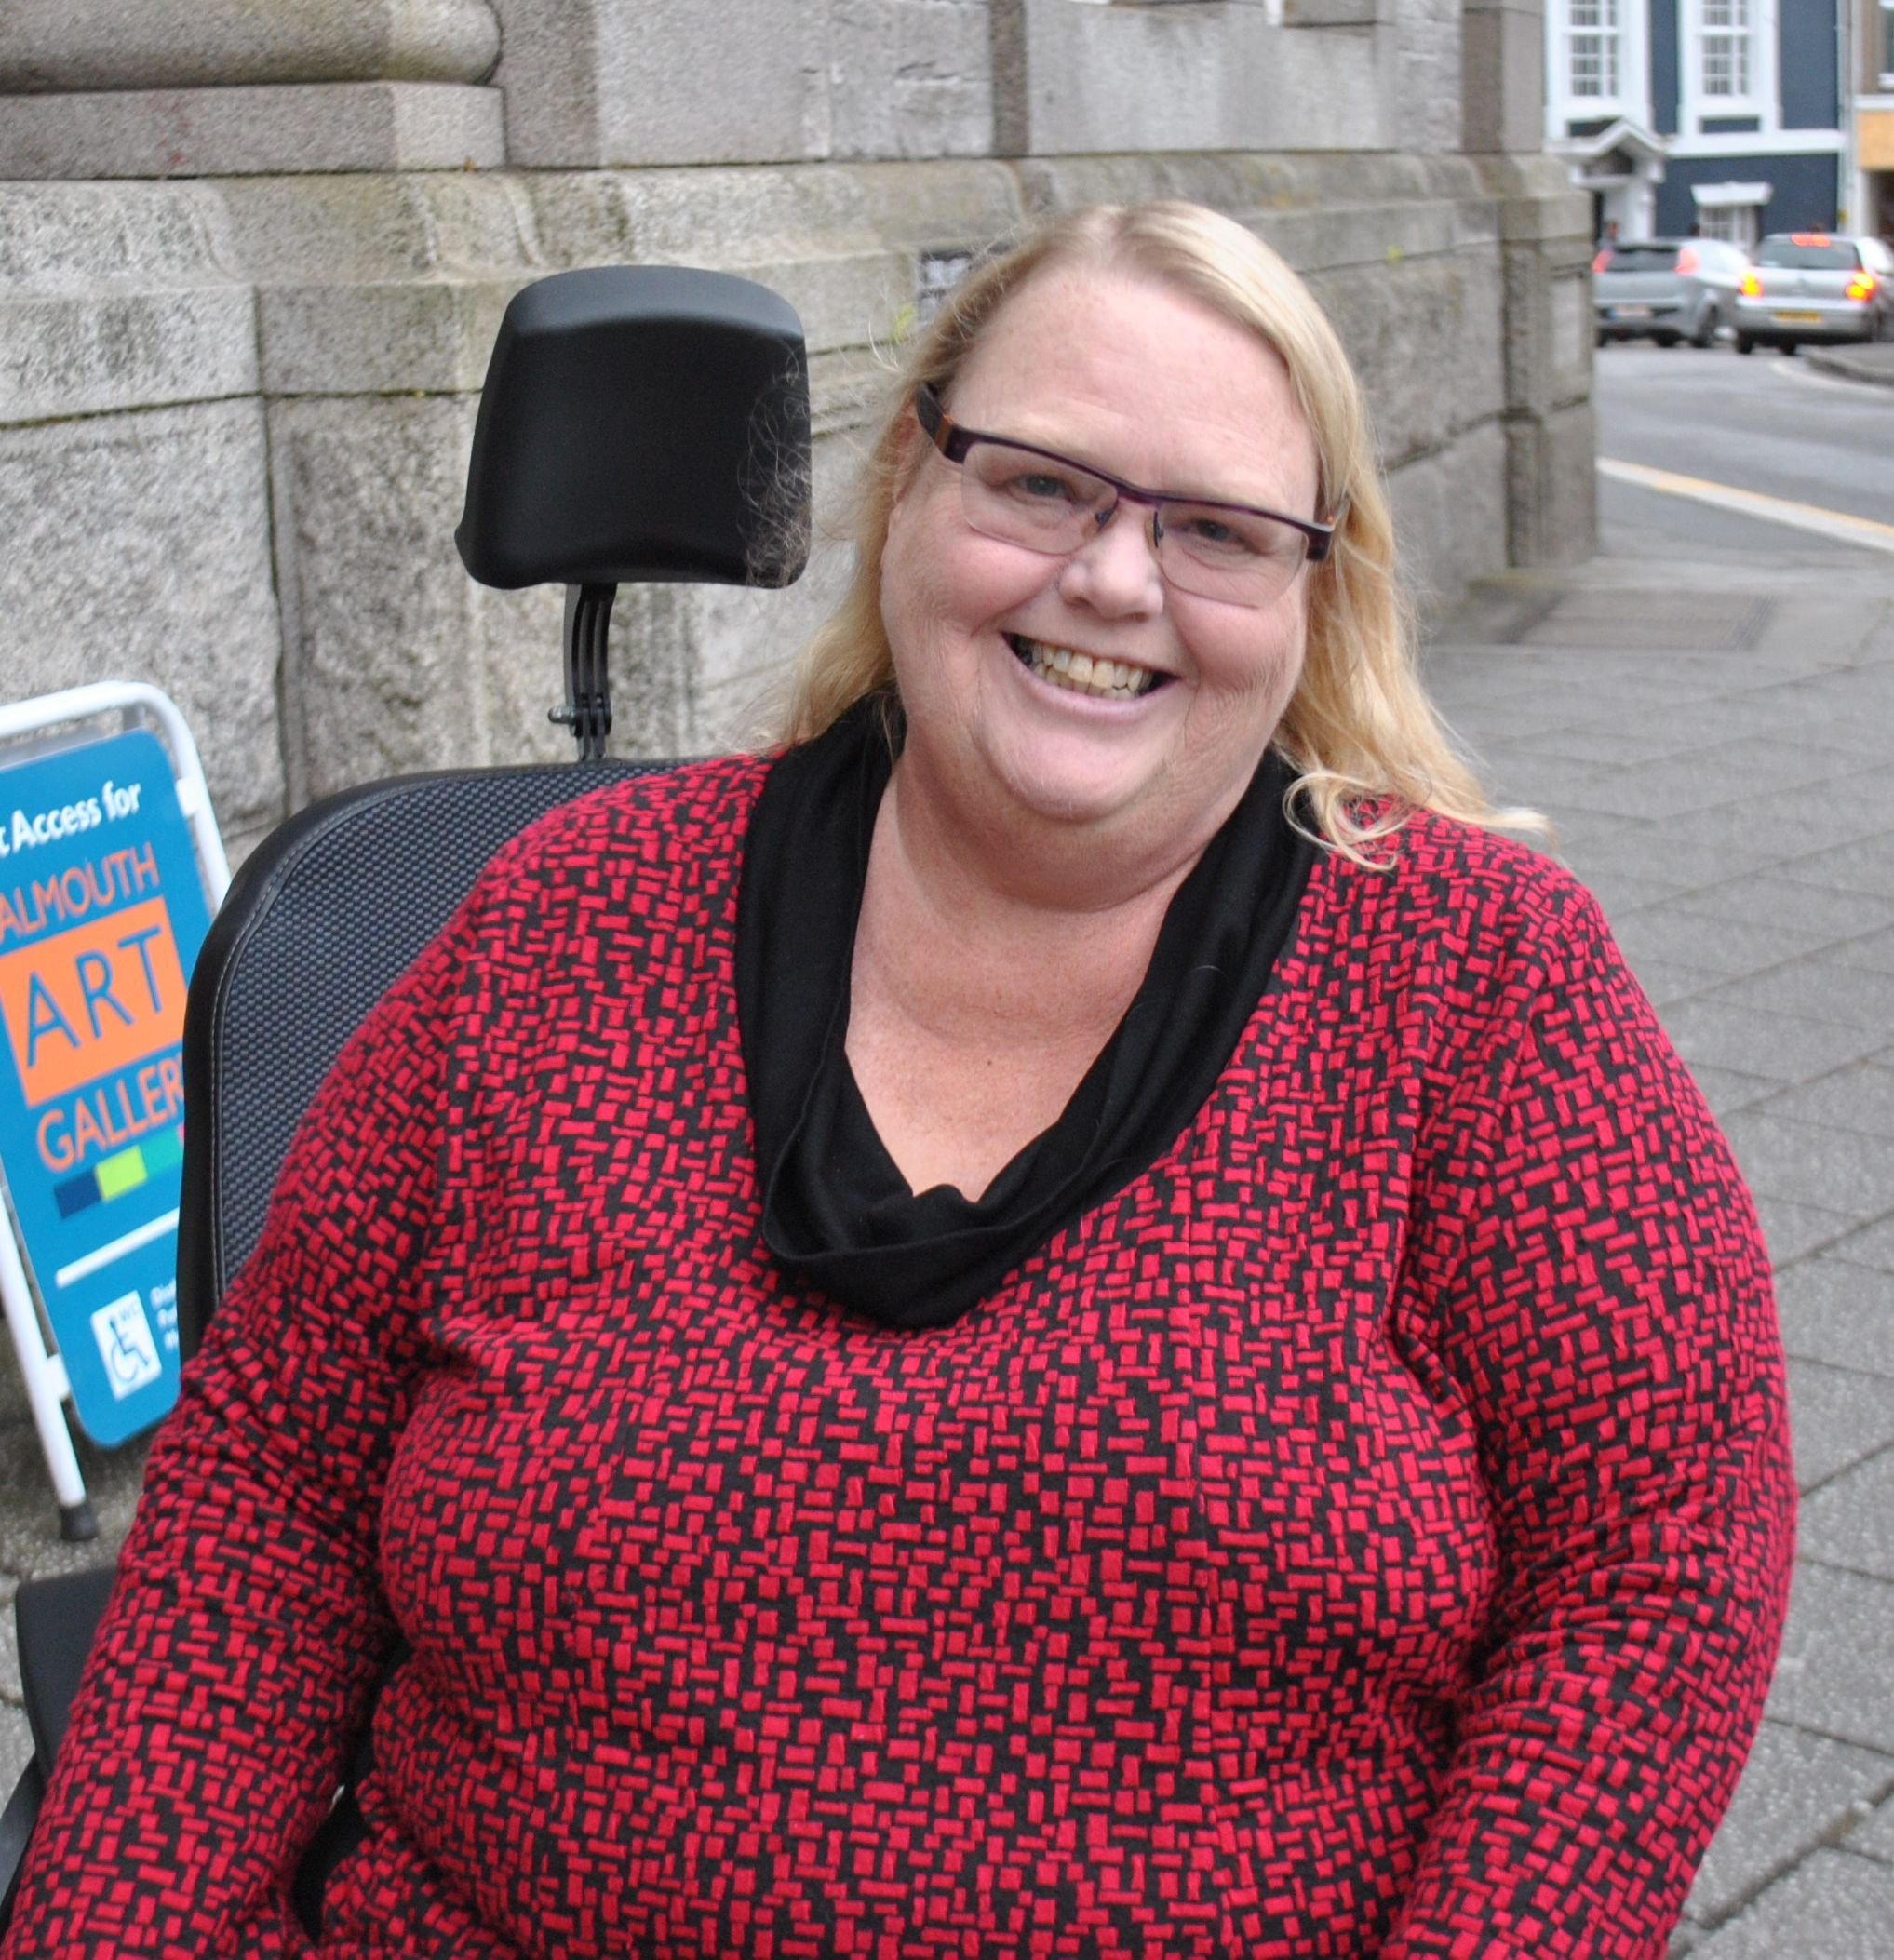 Councillor Candy Atherton, who has spoken out against a proposed increase in student numbers